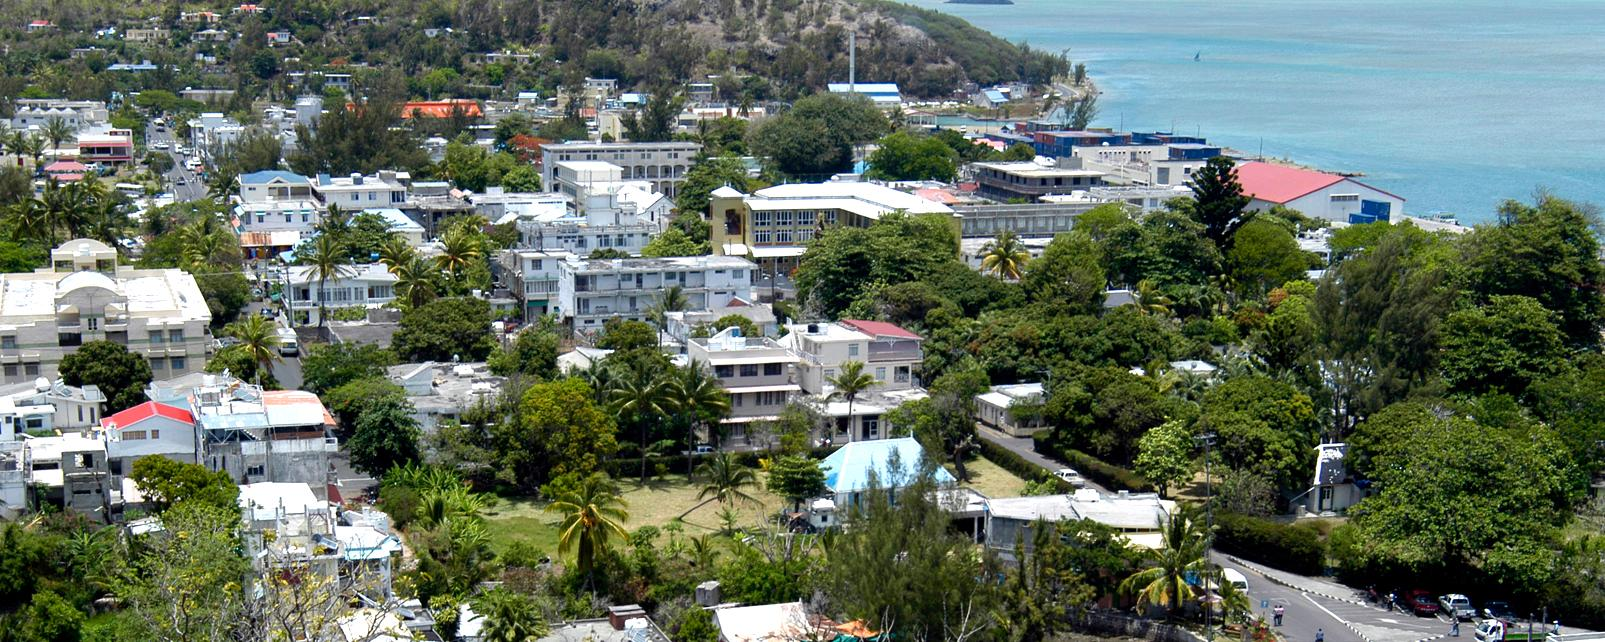 Guide de voyage port mathurin ile maurice easyvoyage - Meteo port louis ile maurice ...